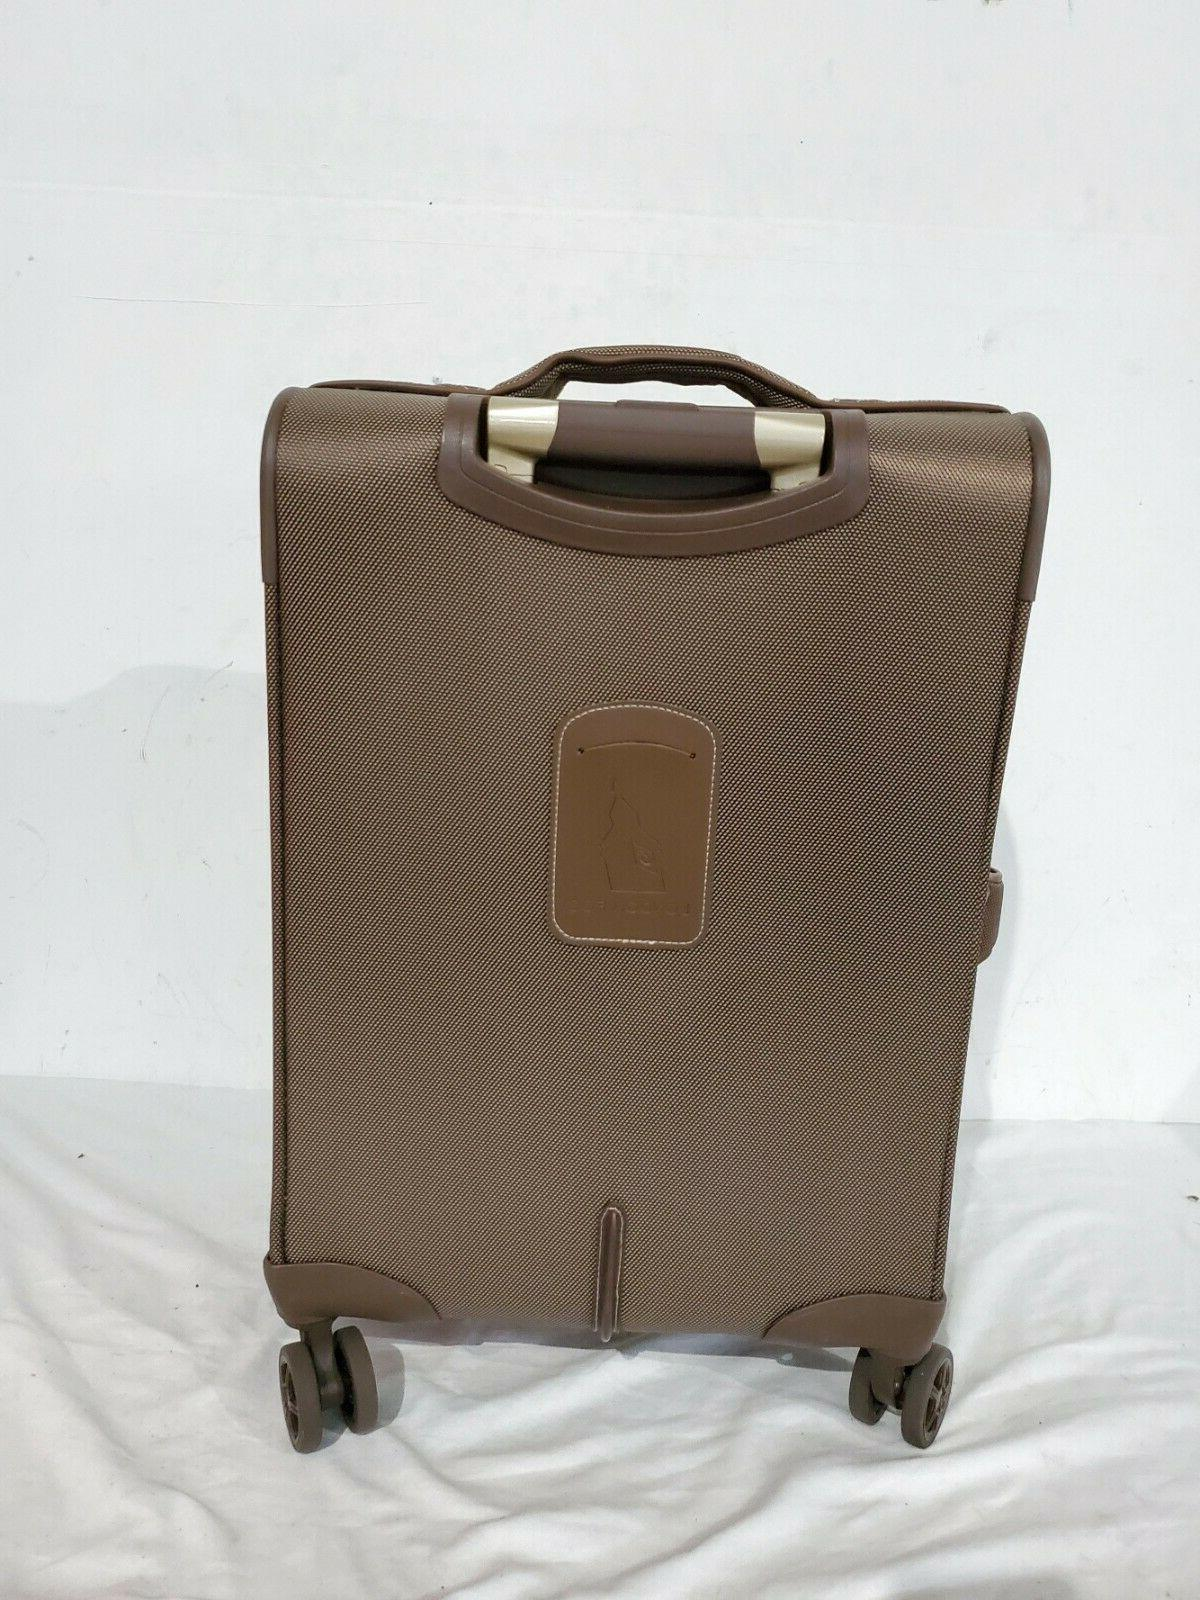 II Carry-On Luggage